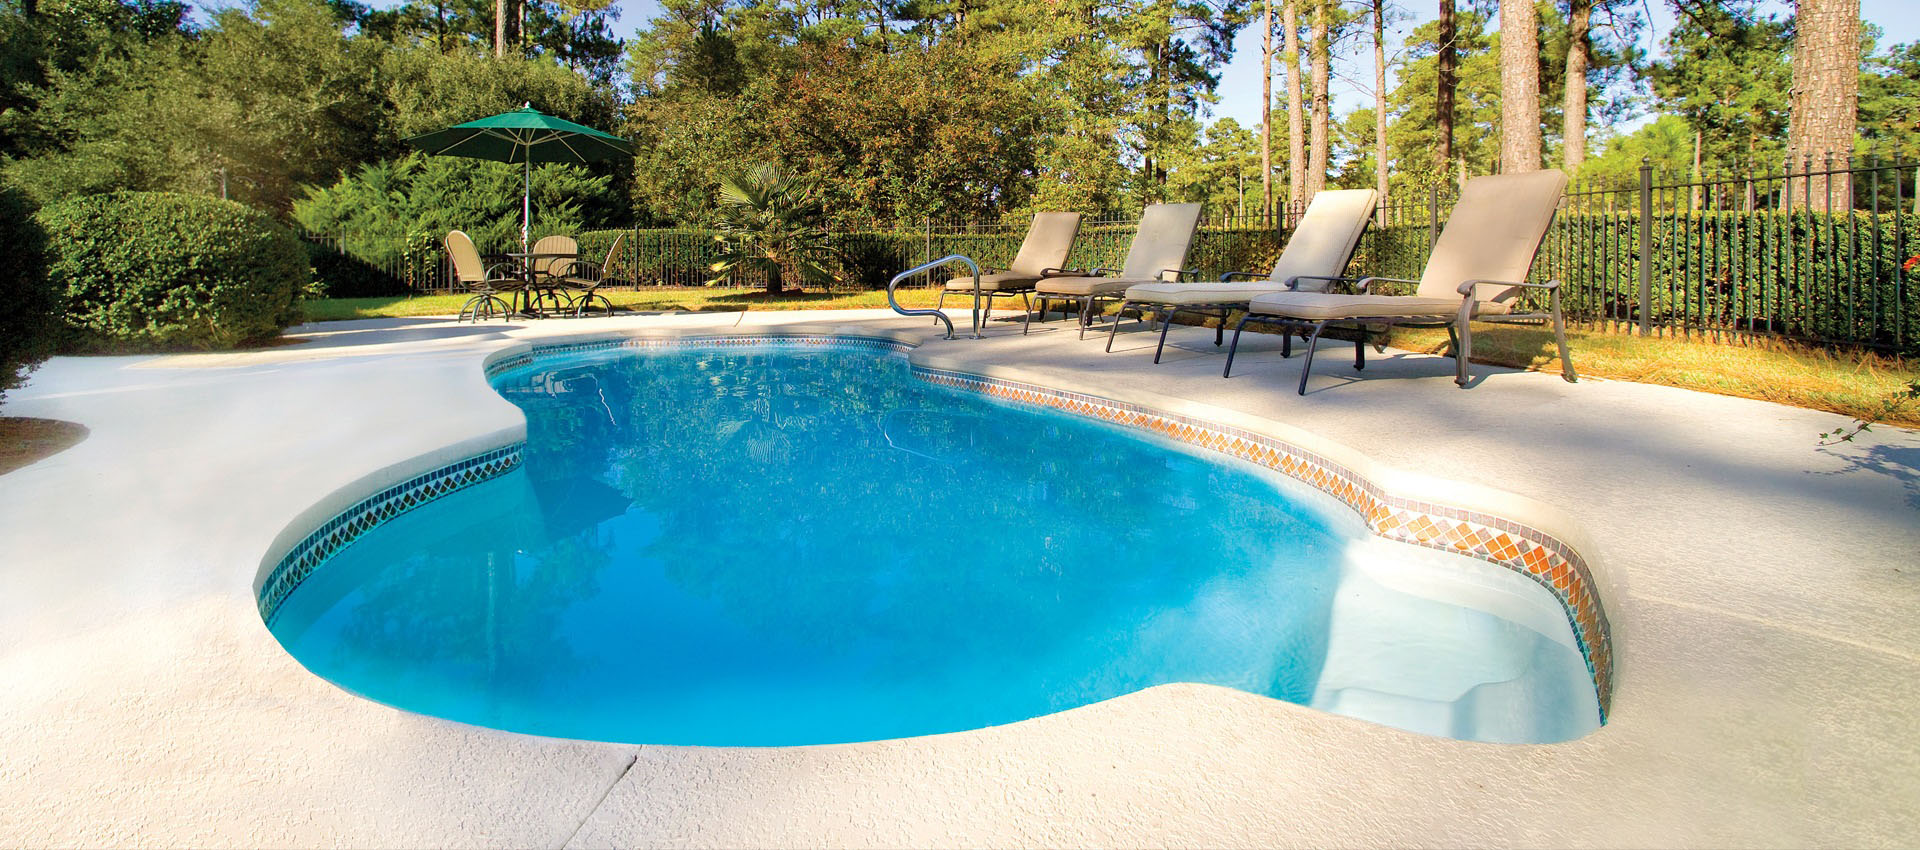 fiberglass pools vs concrete